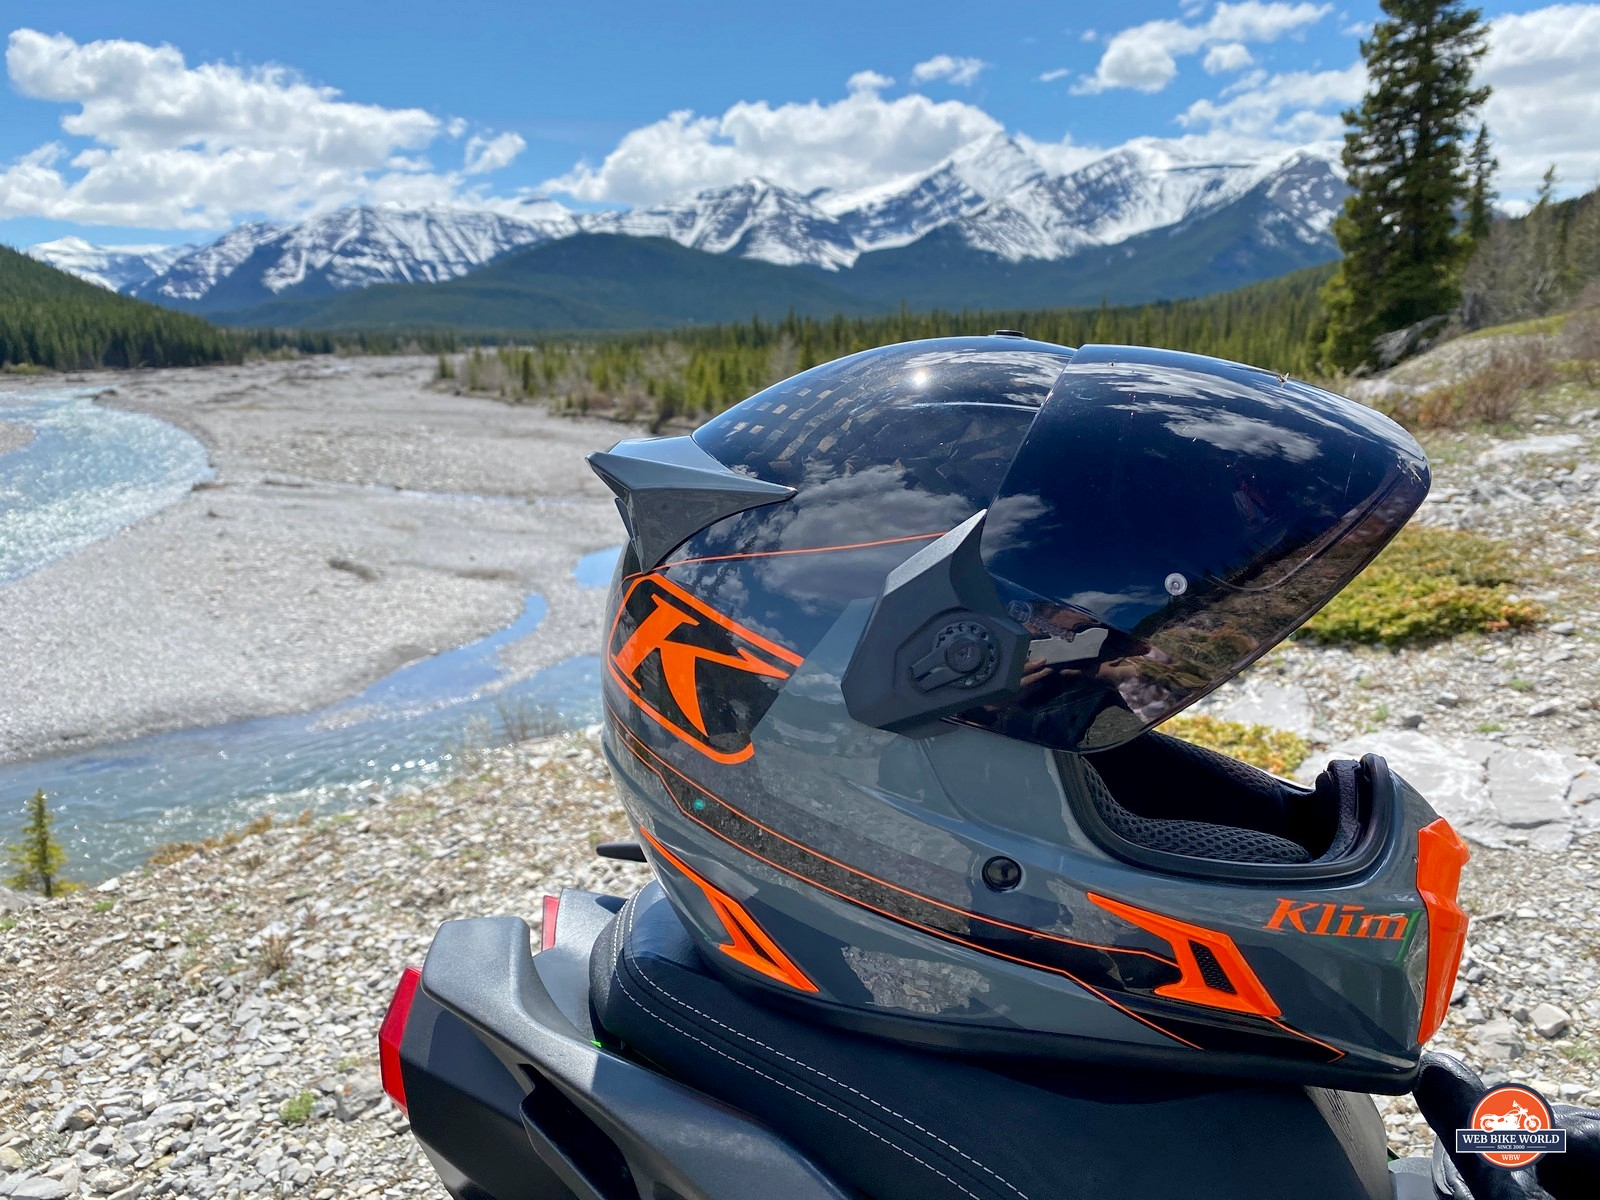 The Klim Krios Pro out in the wild.